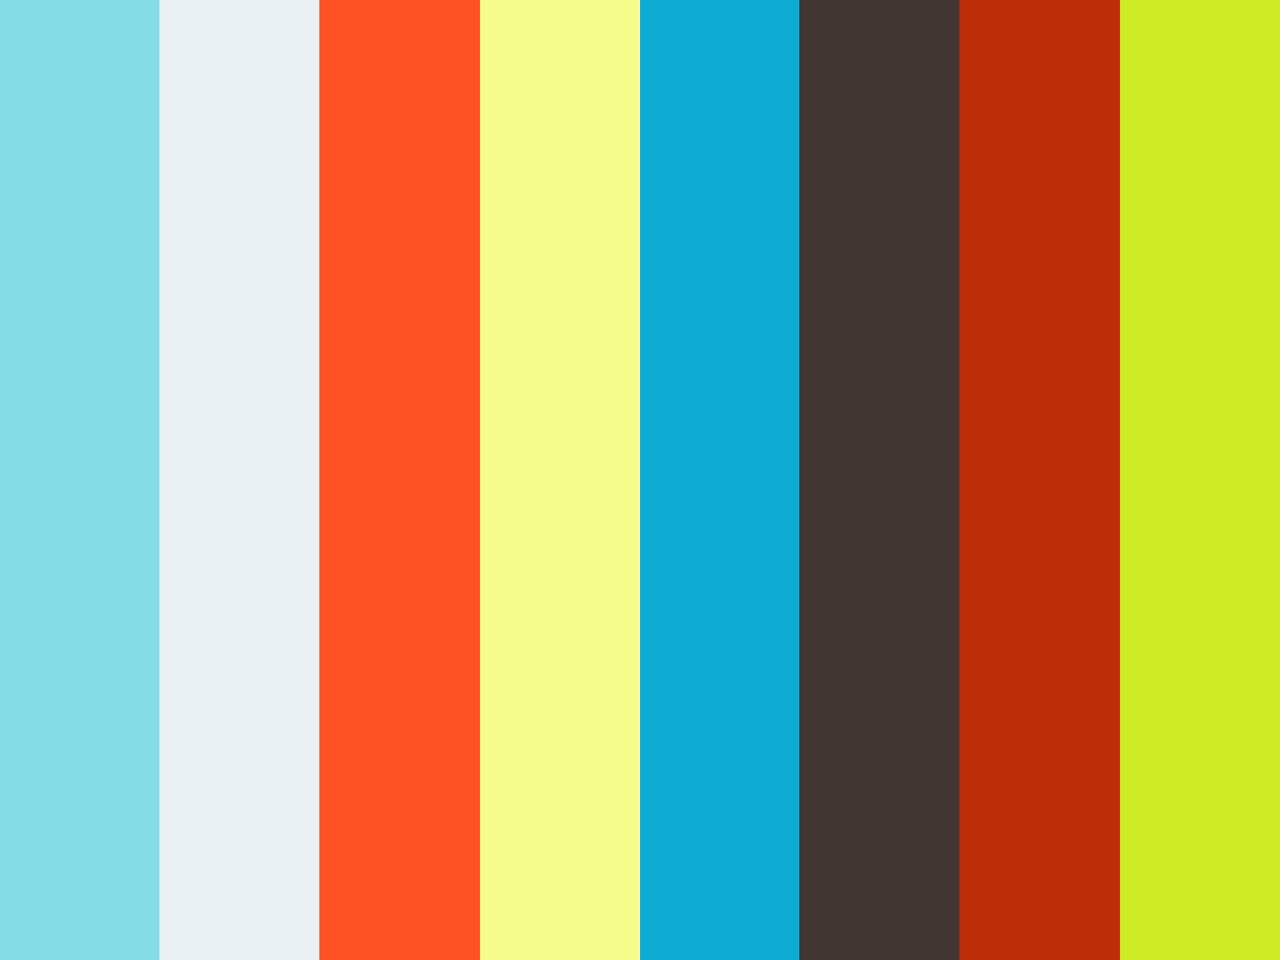 Mobilemapping LIDAR web viewer